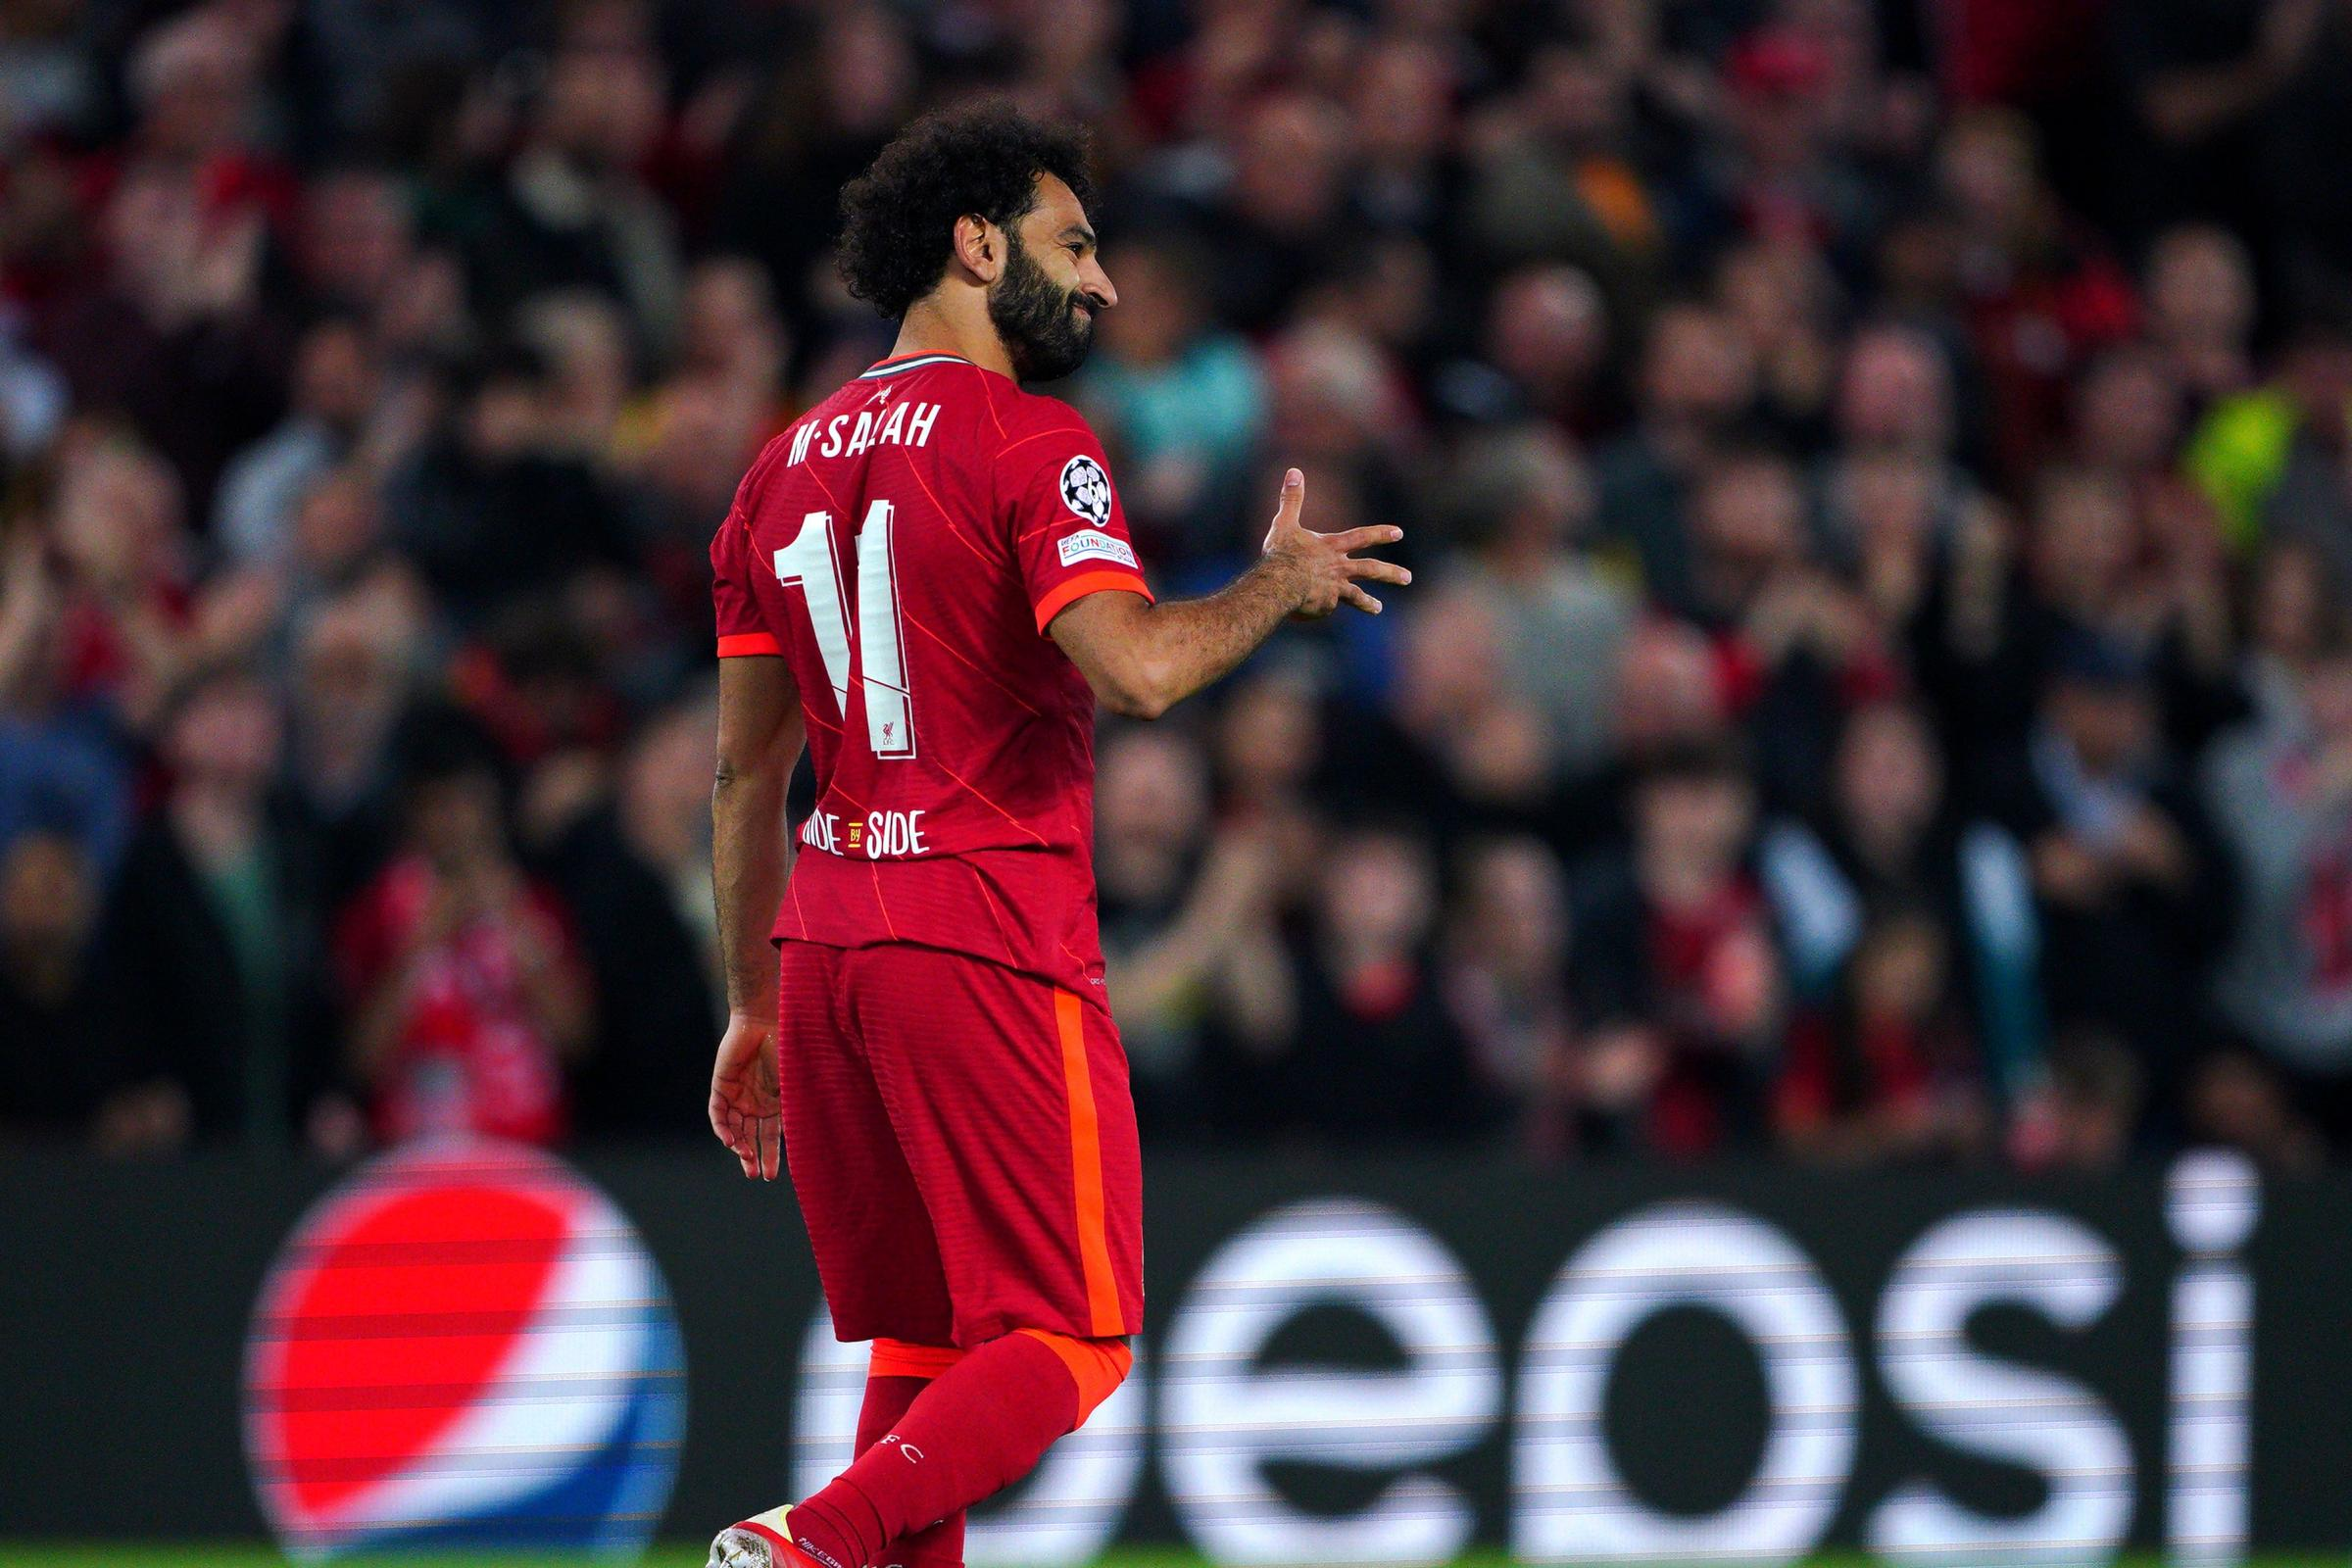 Mohamed Salah focused on winning at Liverpool amid contract speculation